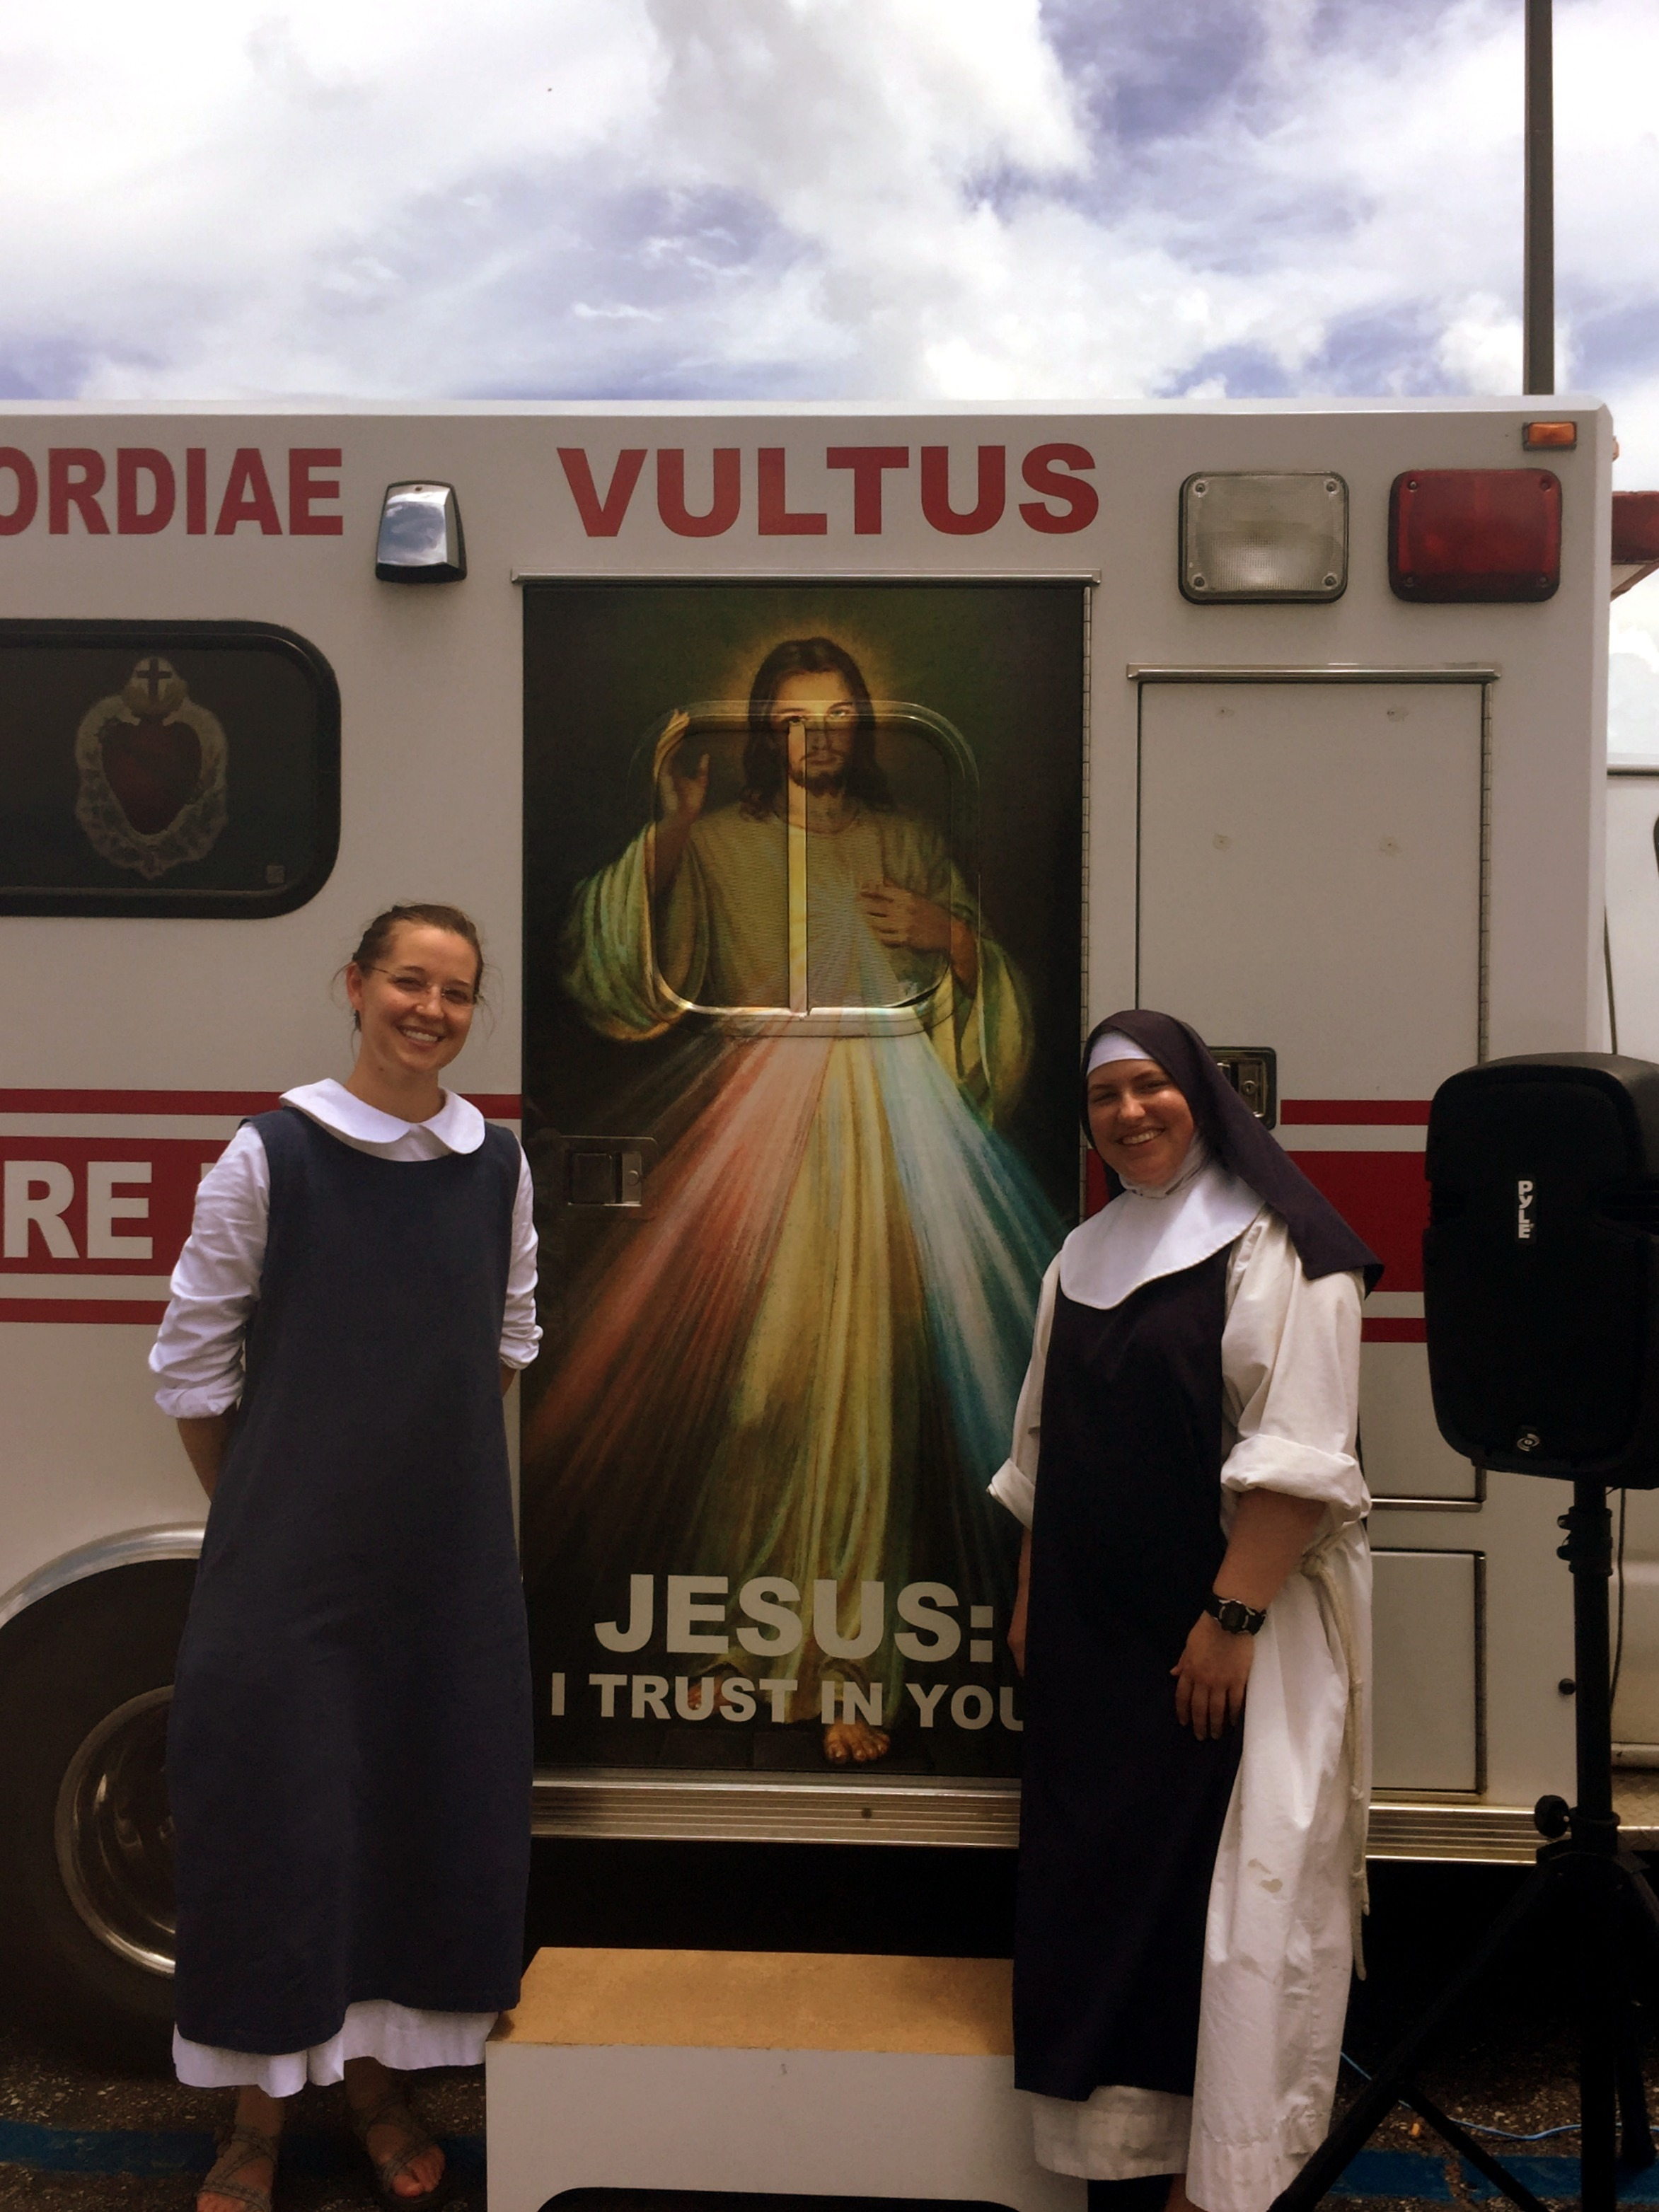 Sr. Francesca DuPre and Sr. Jeanne d'Arc are among the members of the Community of Jesus Christ Crucified who participate in the ministry of the Spiritual Care Unit.